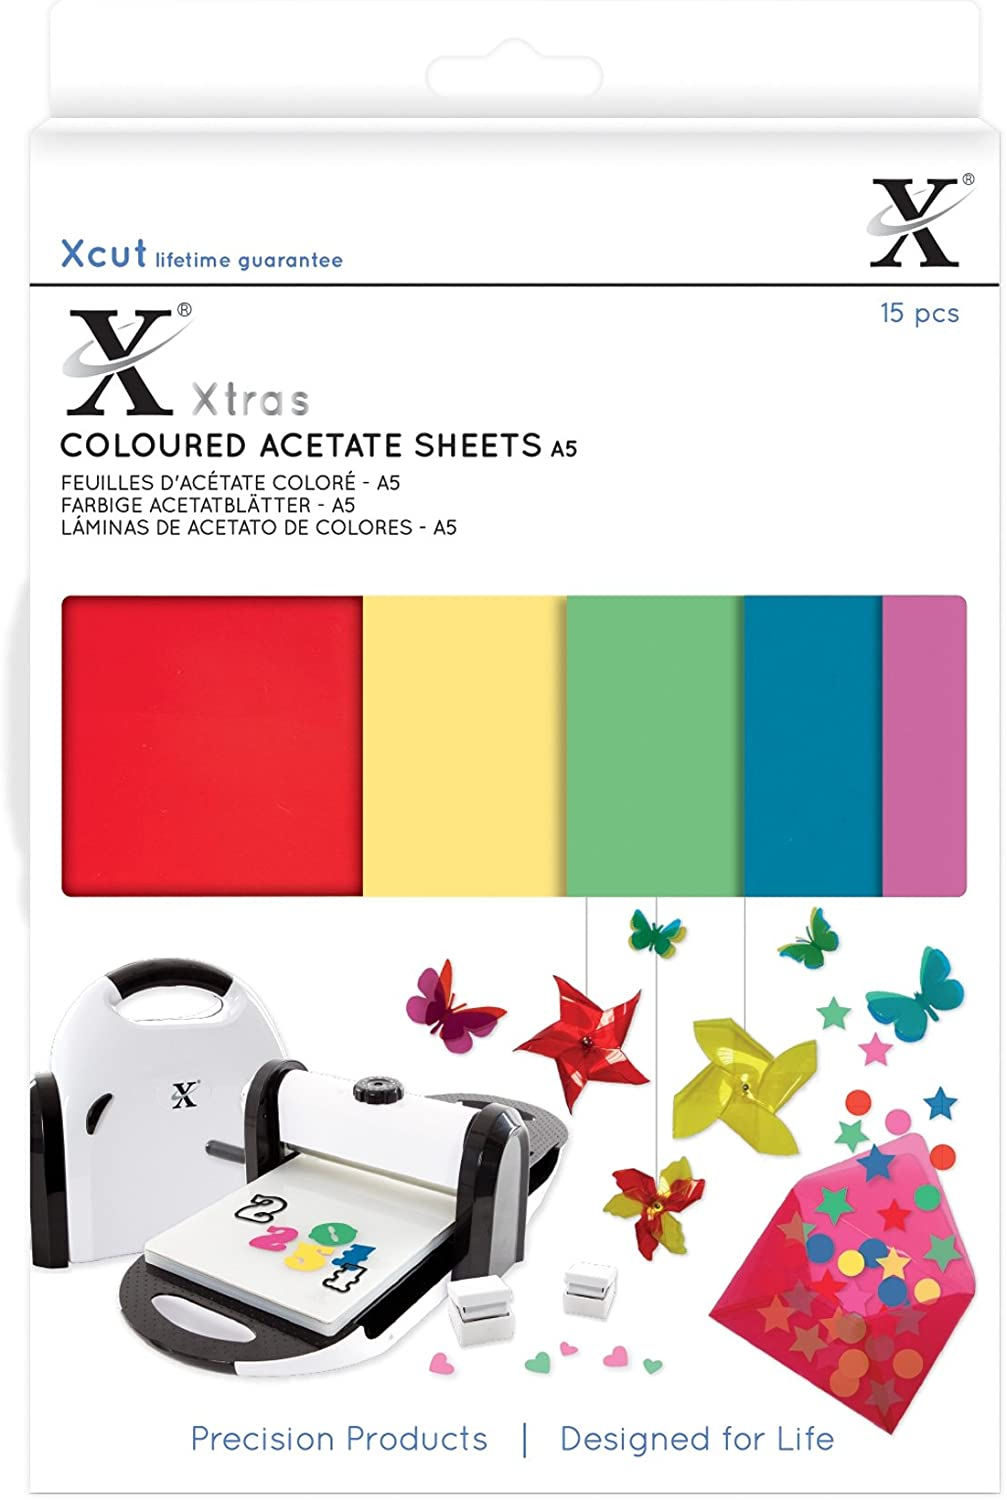 Multicolor DOCrafts XCU174401 Xcut Xtra A5 Colored Acetate Sheets 15 Pack